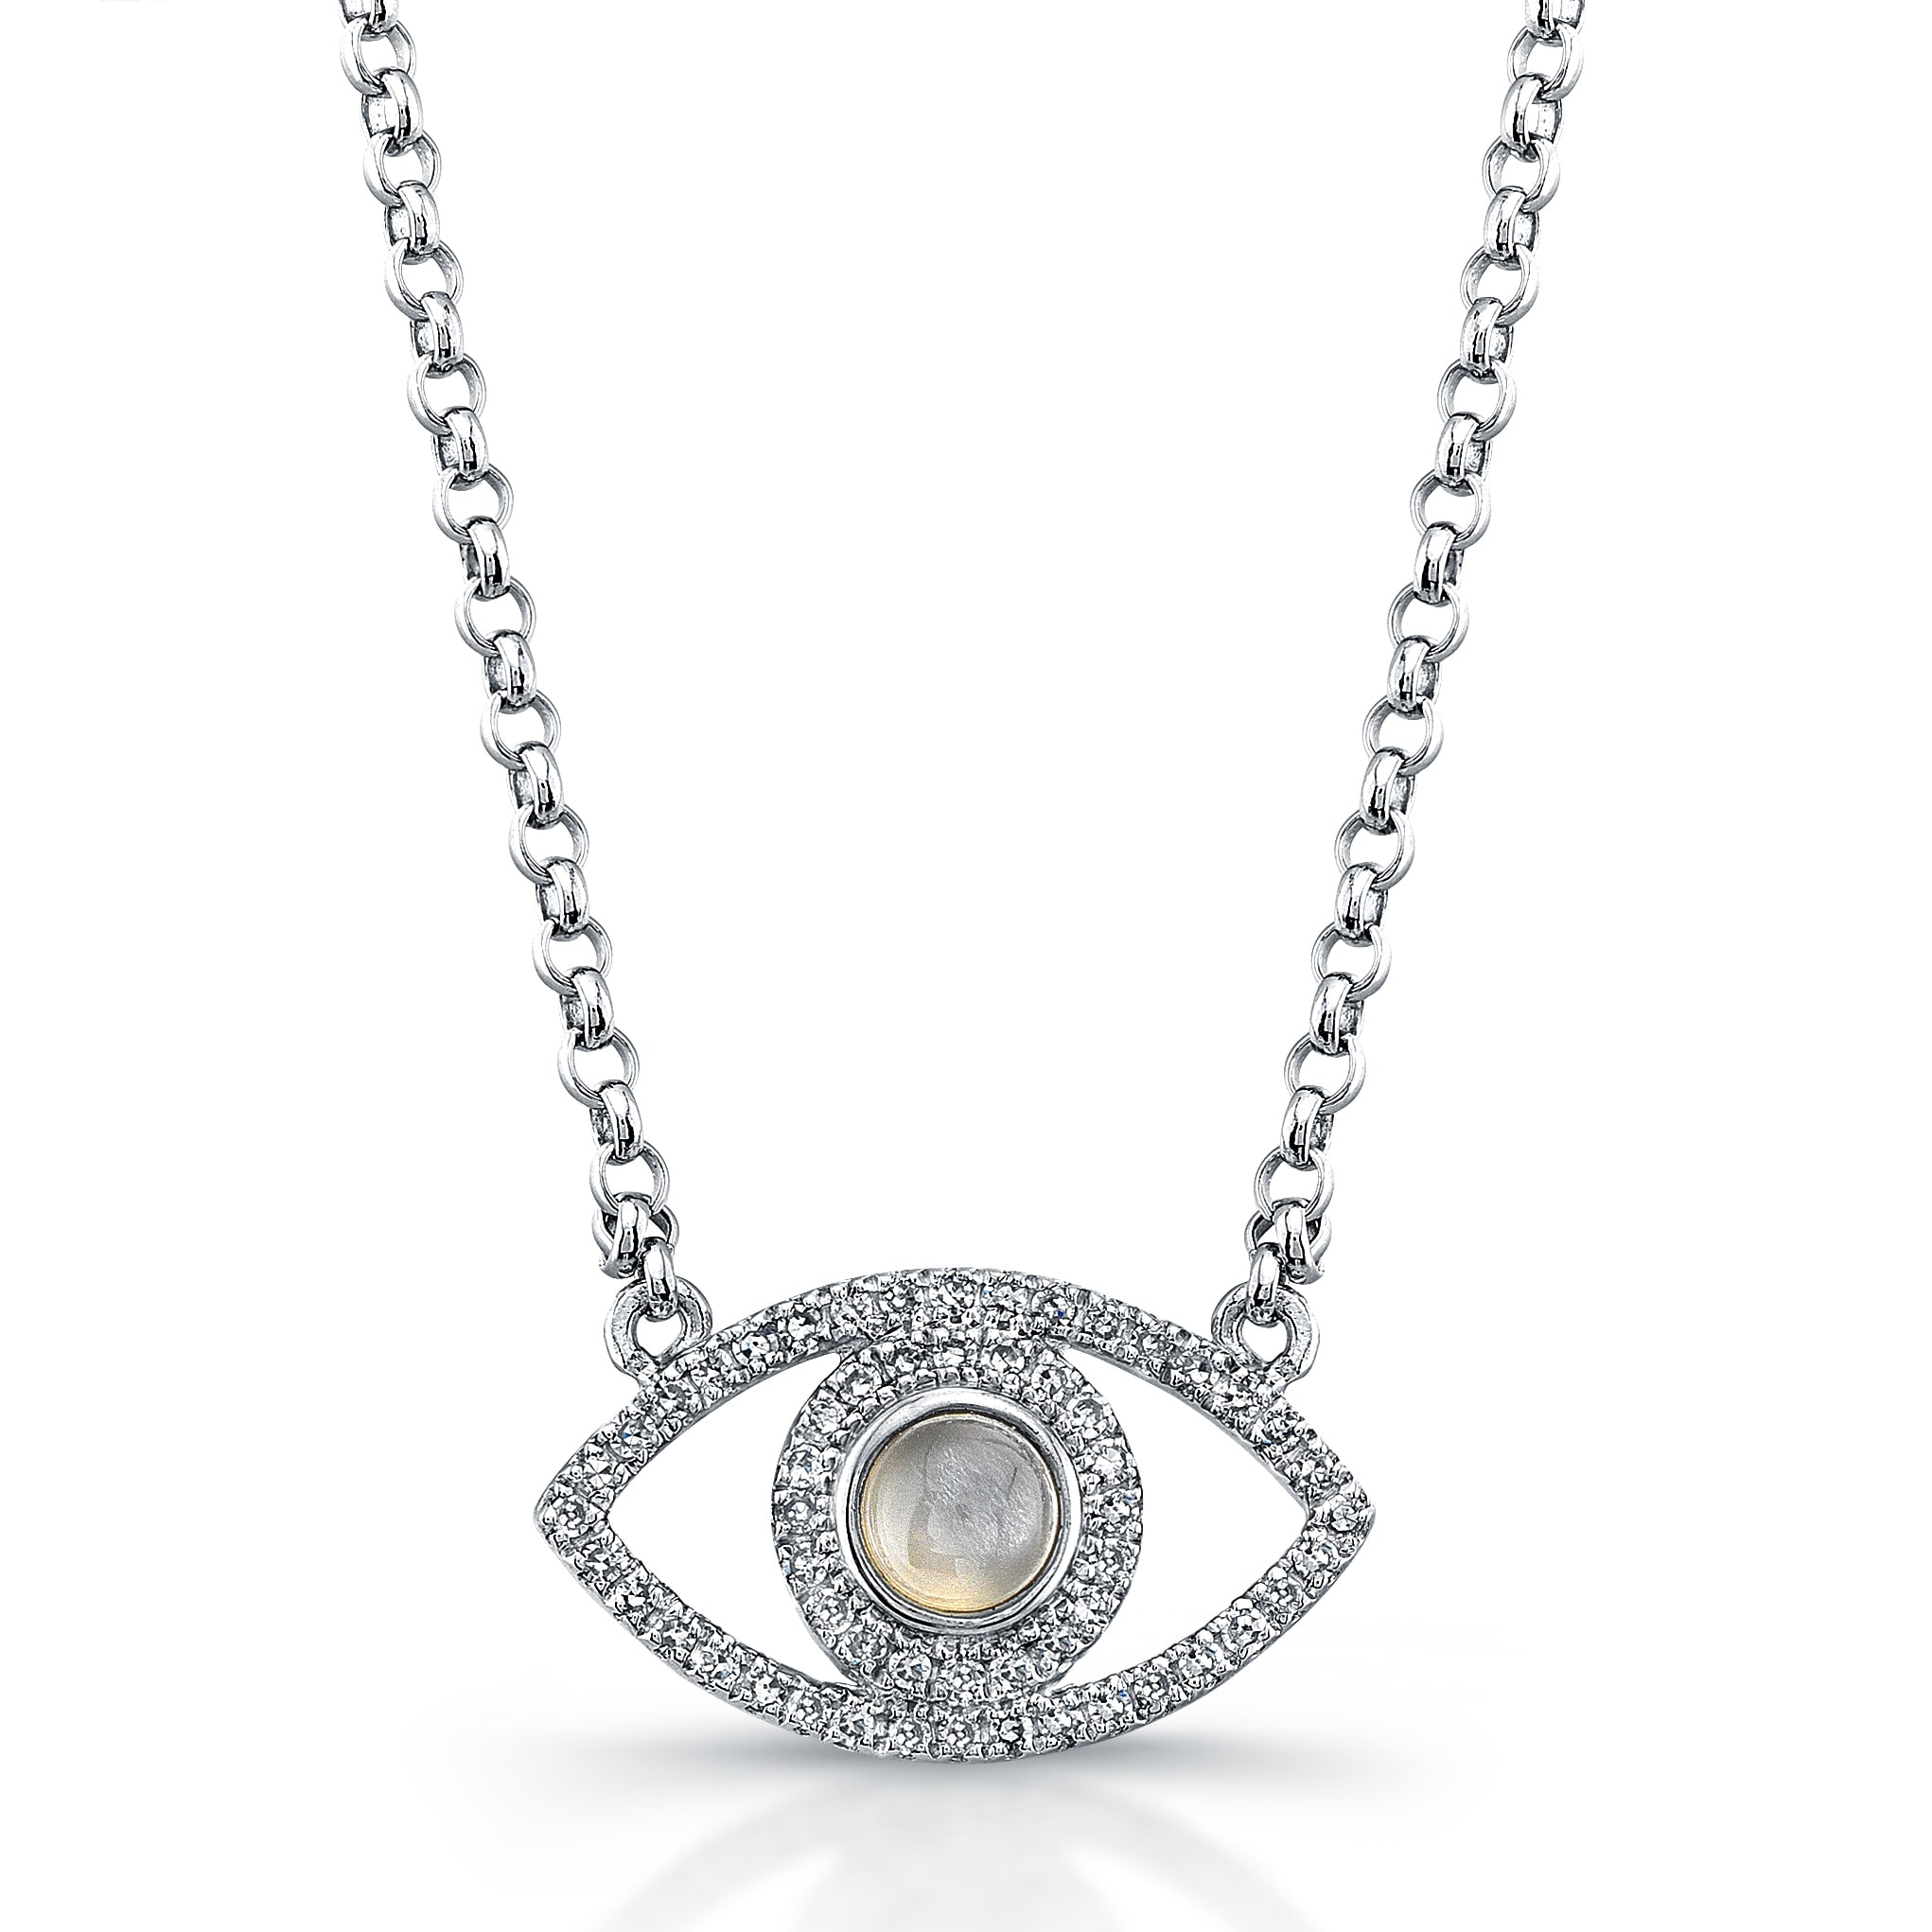 und evil newone to diamant en gross new diamond jewellery one schmuck click rosegold klein halskette eye zoom